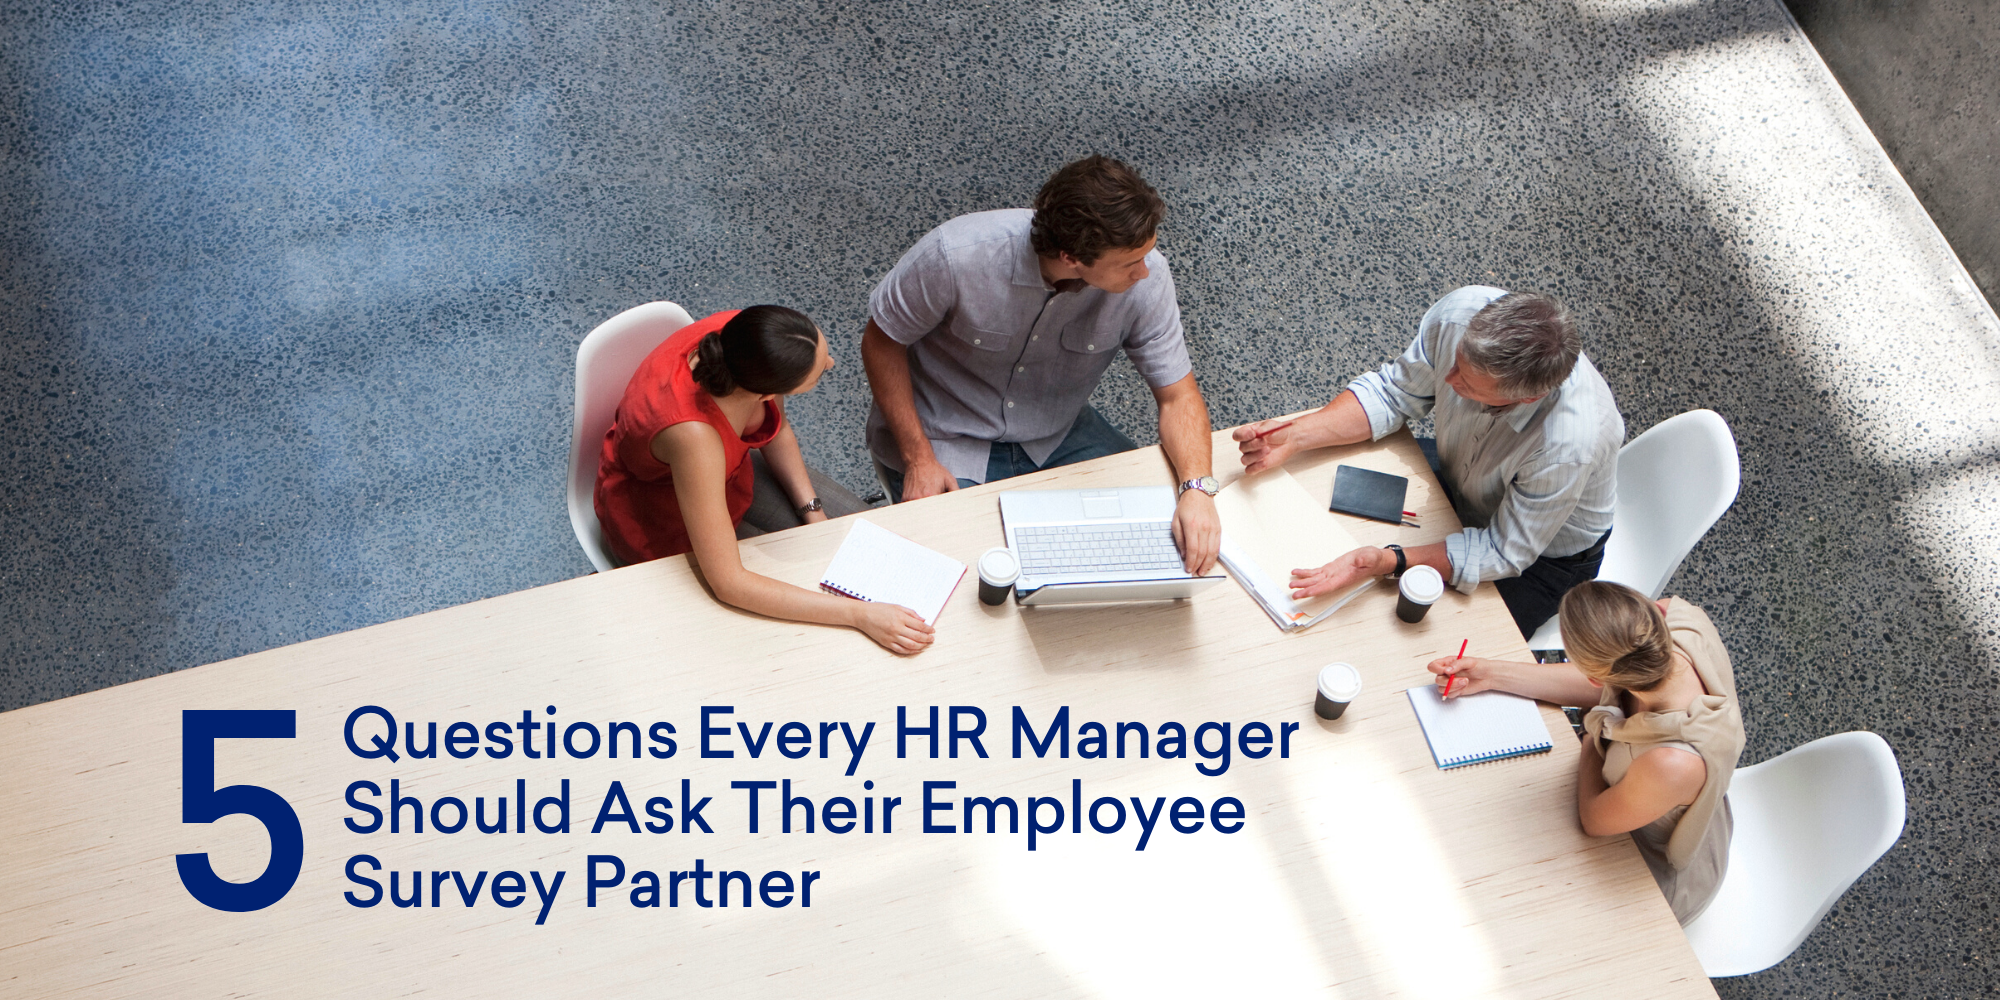 5 Questions Every HR Manager Should Ask Their Employee Survey Partner